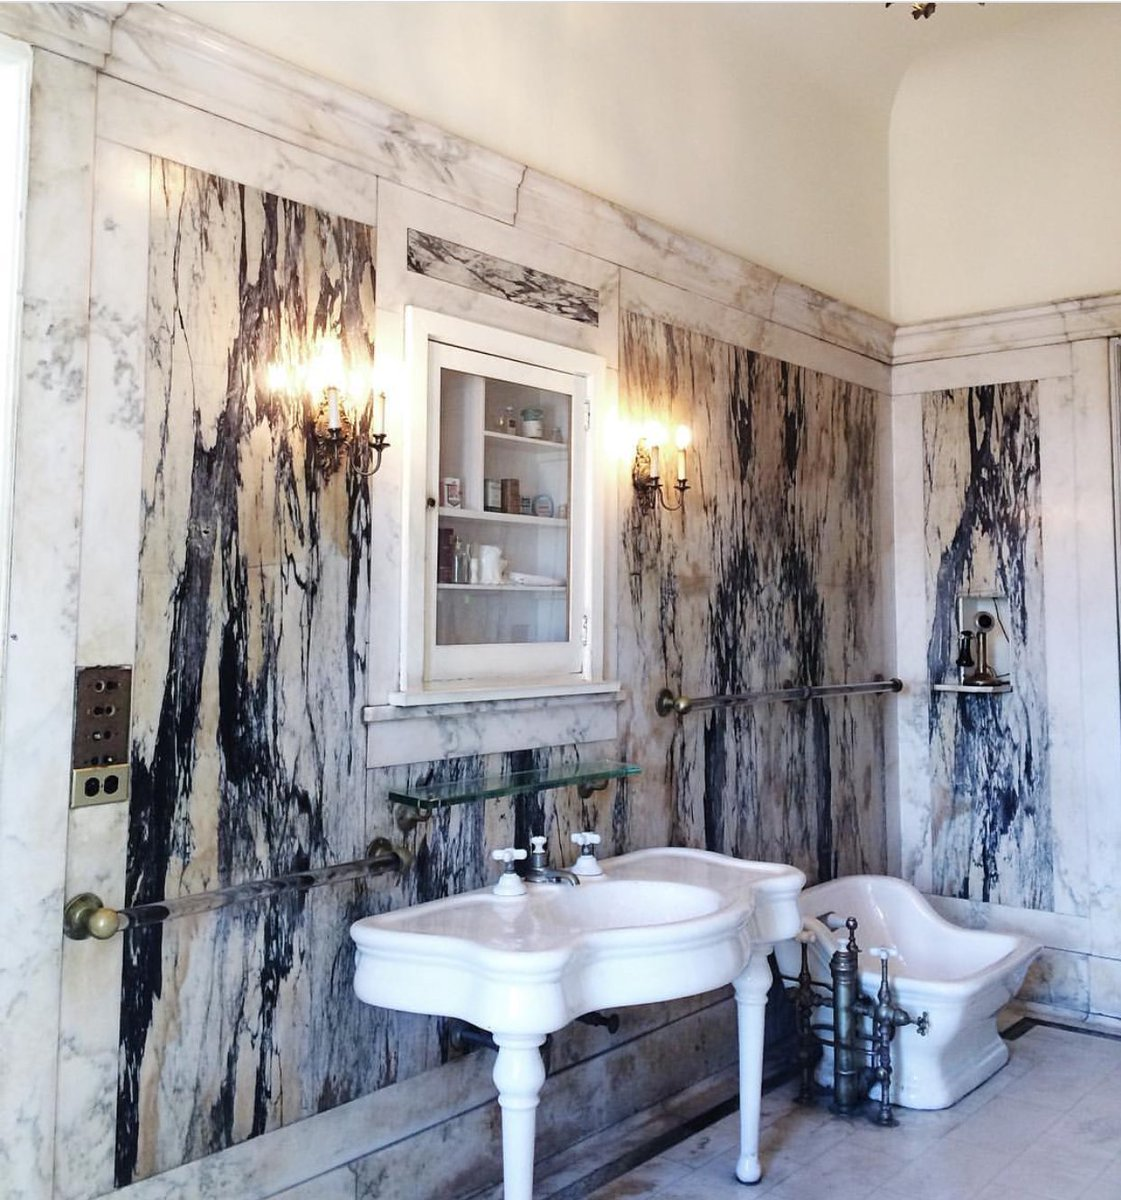 casa loma on twitter of course sir henry pellatt would have marble walls in his bathroom in his castle libertygroup casaloma tourismtuesday toronto